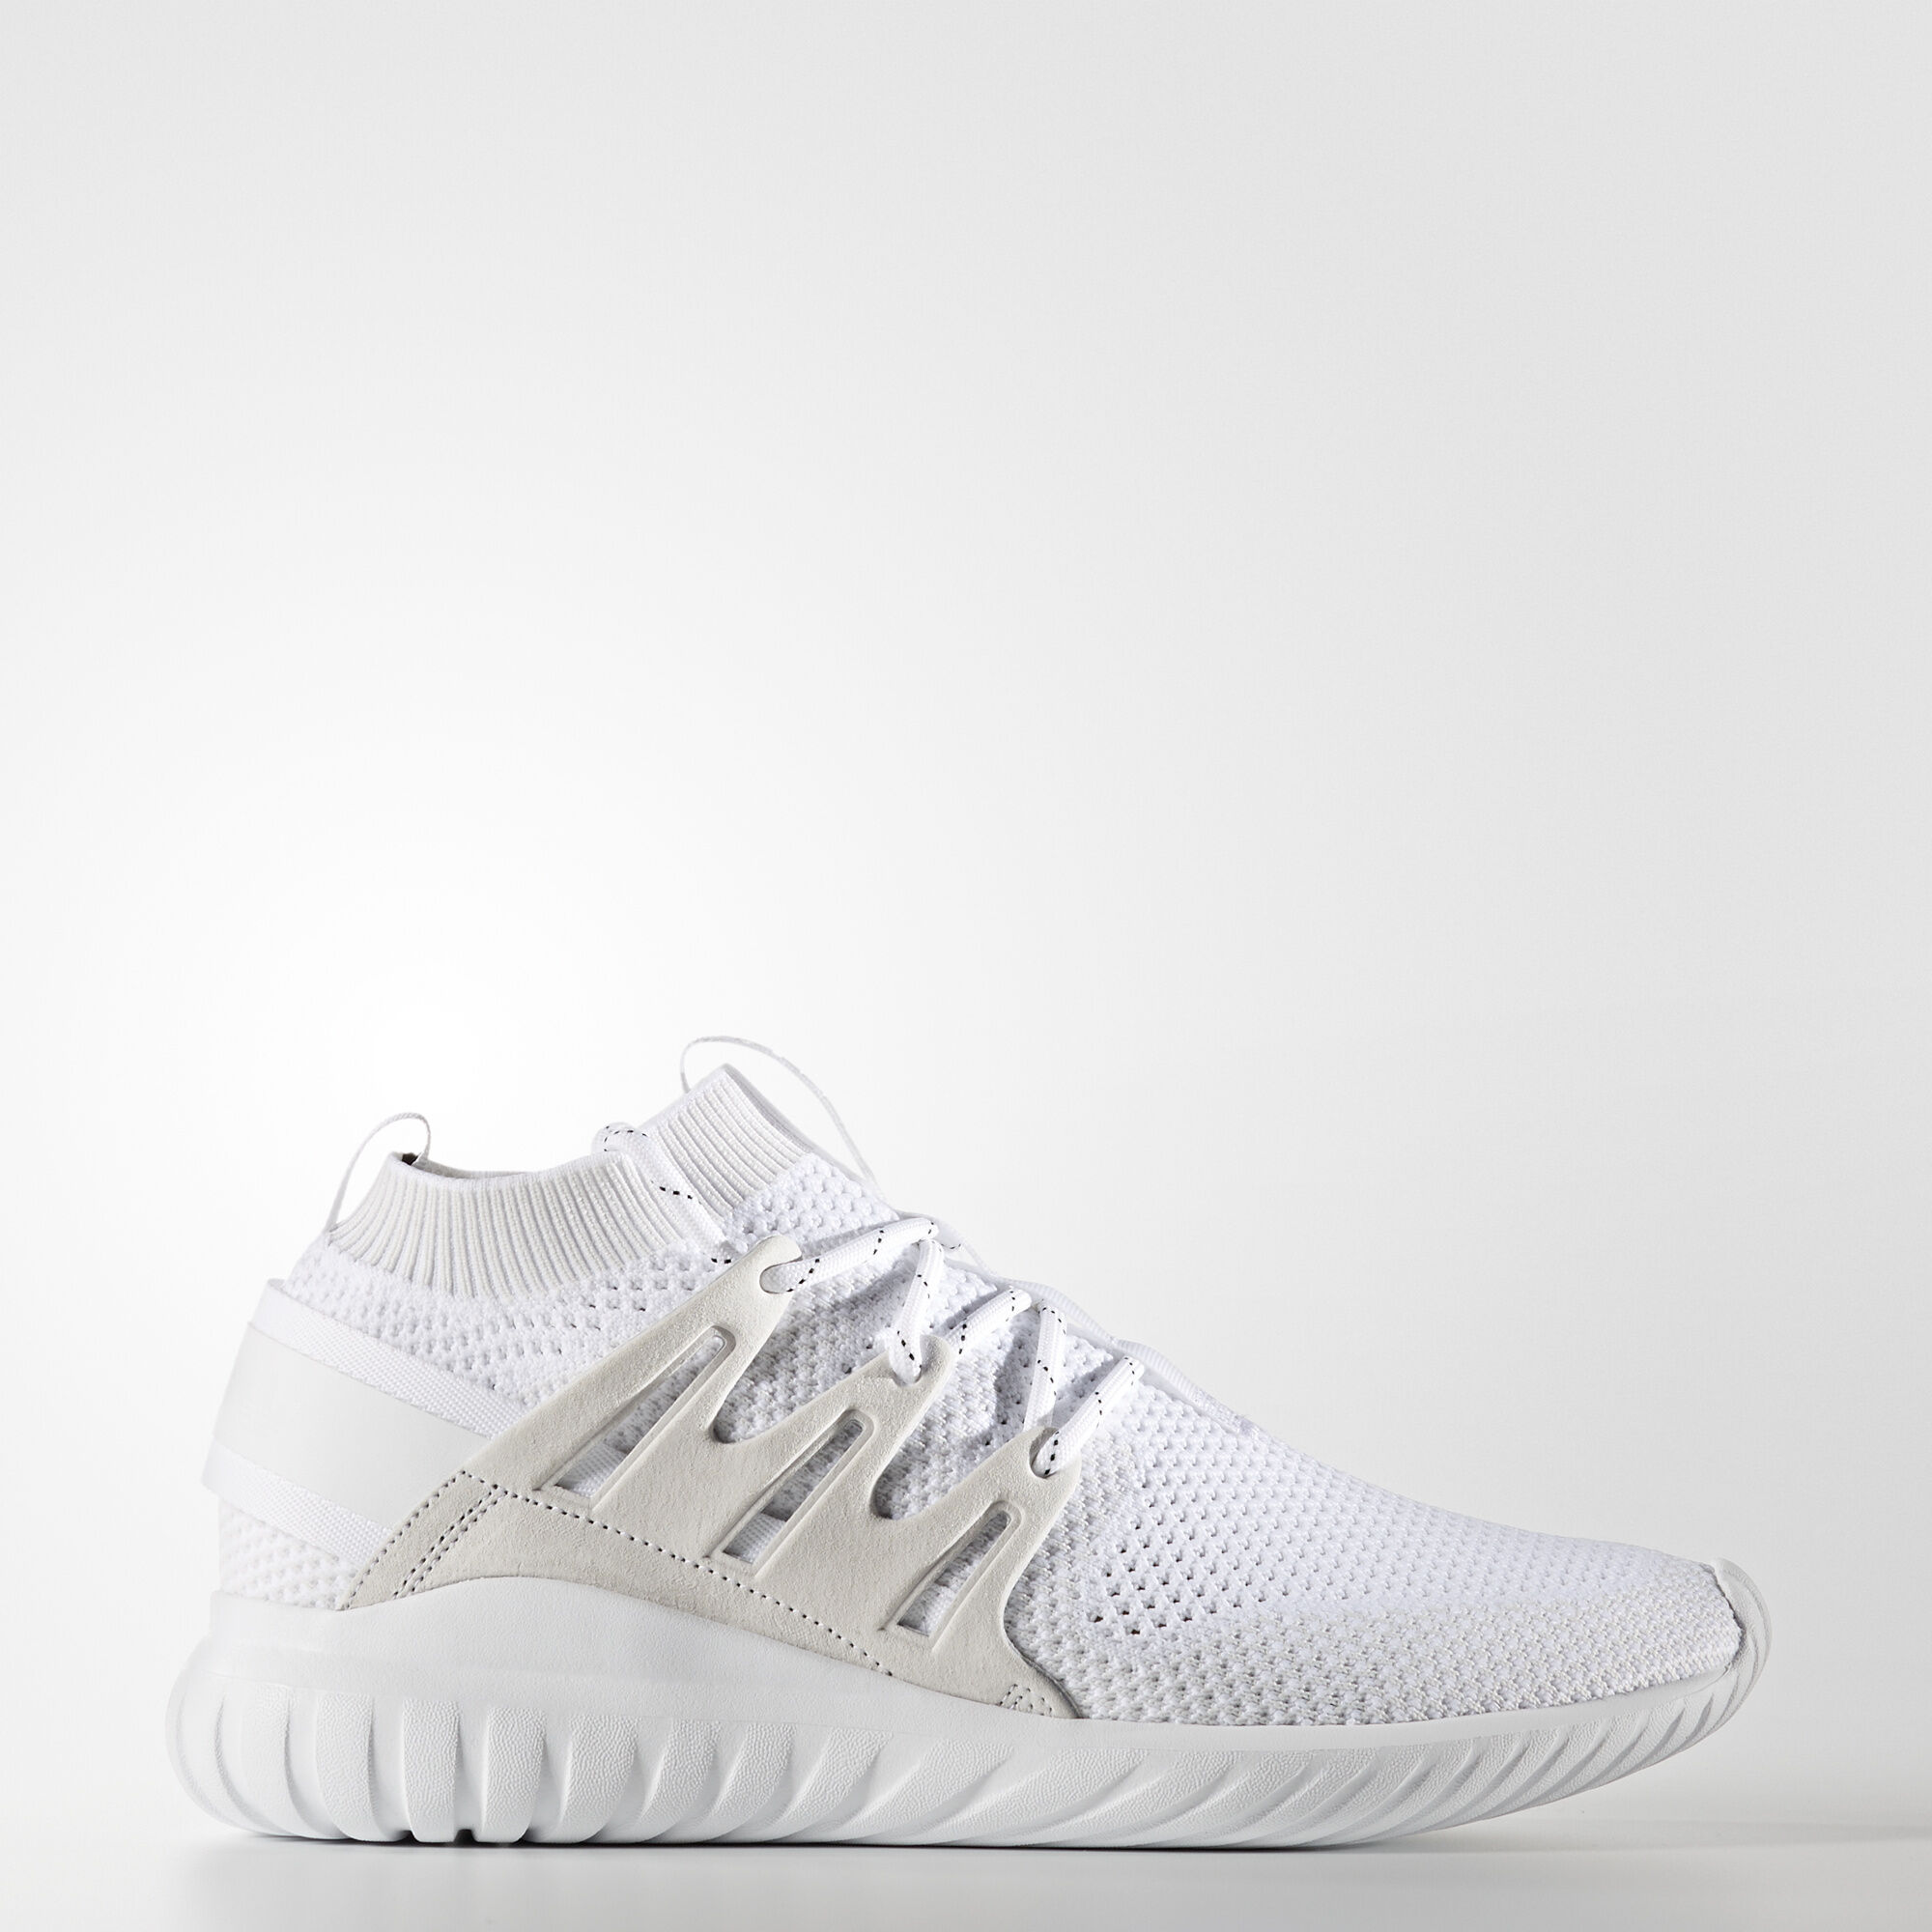 Adidas Originals Tubular Nova PK Red Sneakers BB 8406 Caliroots